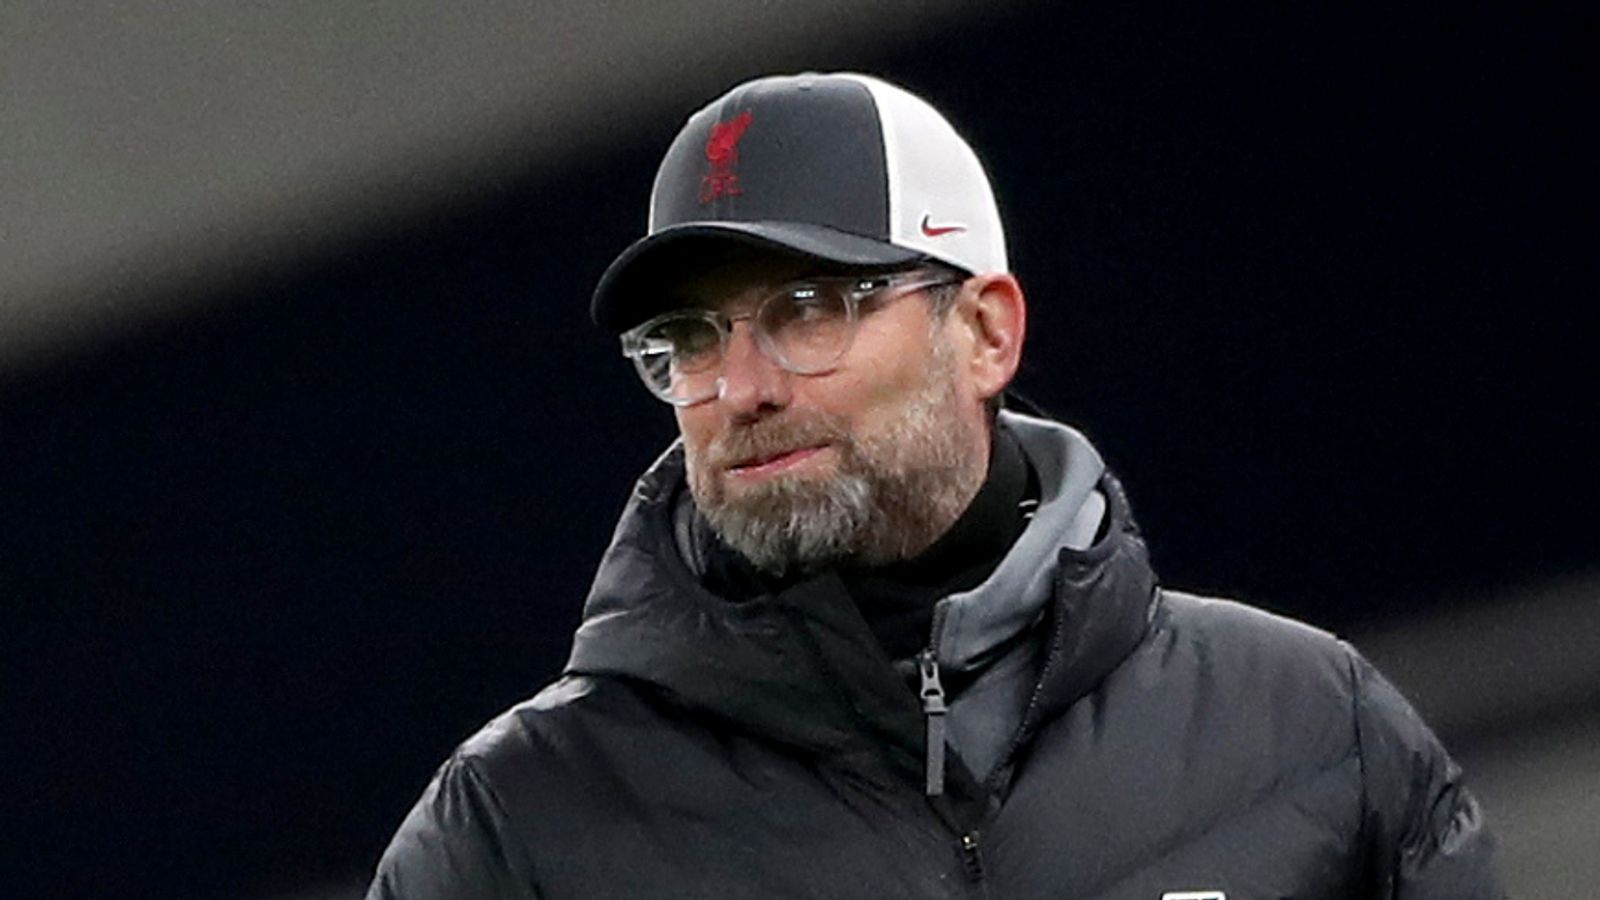 Jurgen Klopp: Liverpool coach says there is no defense of 80 million pounds to sign in the January transfer window |  football news